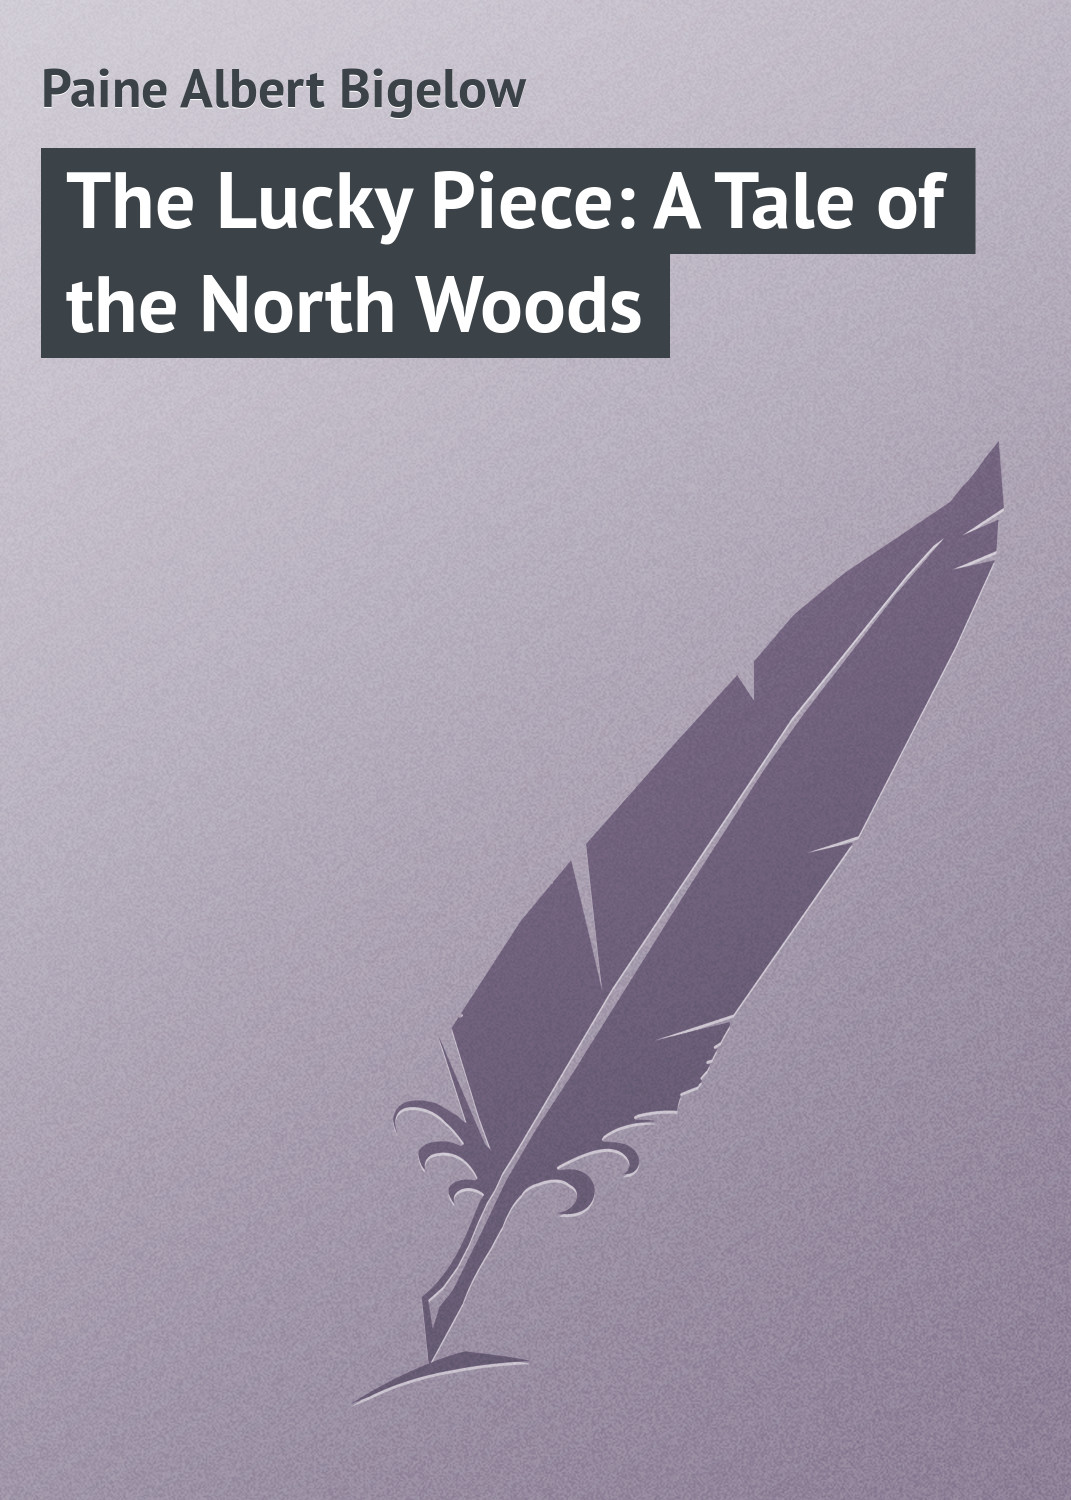 Paine Albert Bigelow The Lucky Piece: A Tale of the North Woods